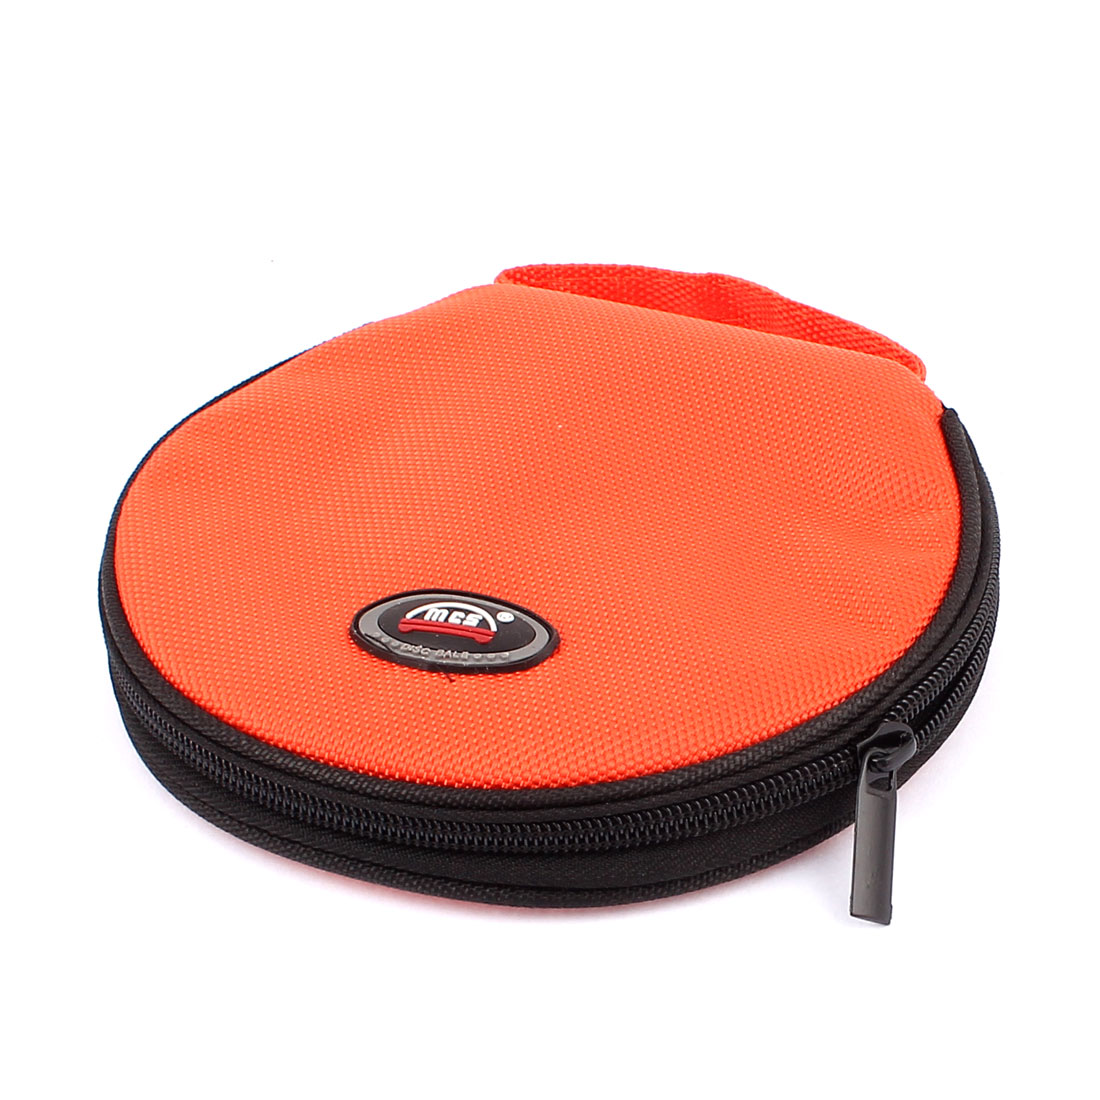 Zip up Round 20 Pockets CD Discs Holder Bag Storage Carry Case Cover Wallet Orange